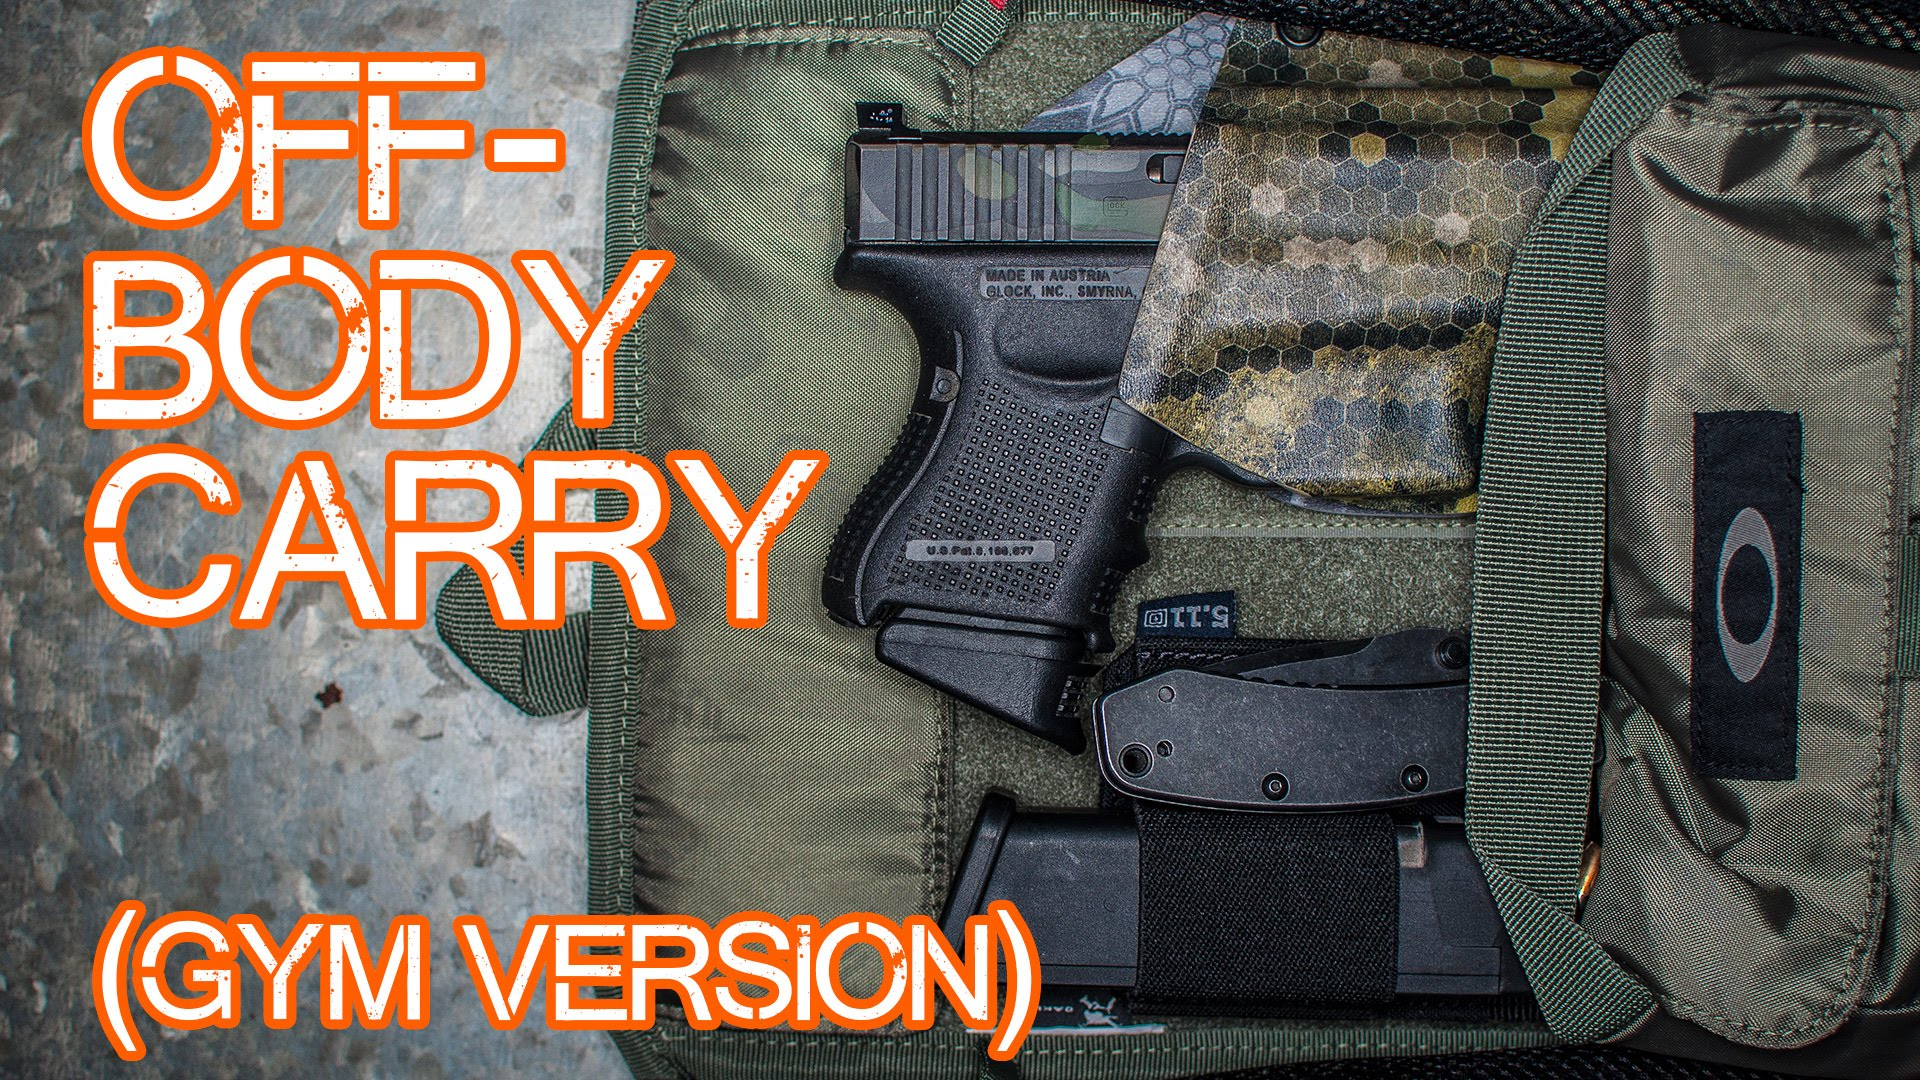 Off-Body Carry Option - Concealed Carry at the gym - Oakley Extractor Sling